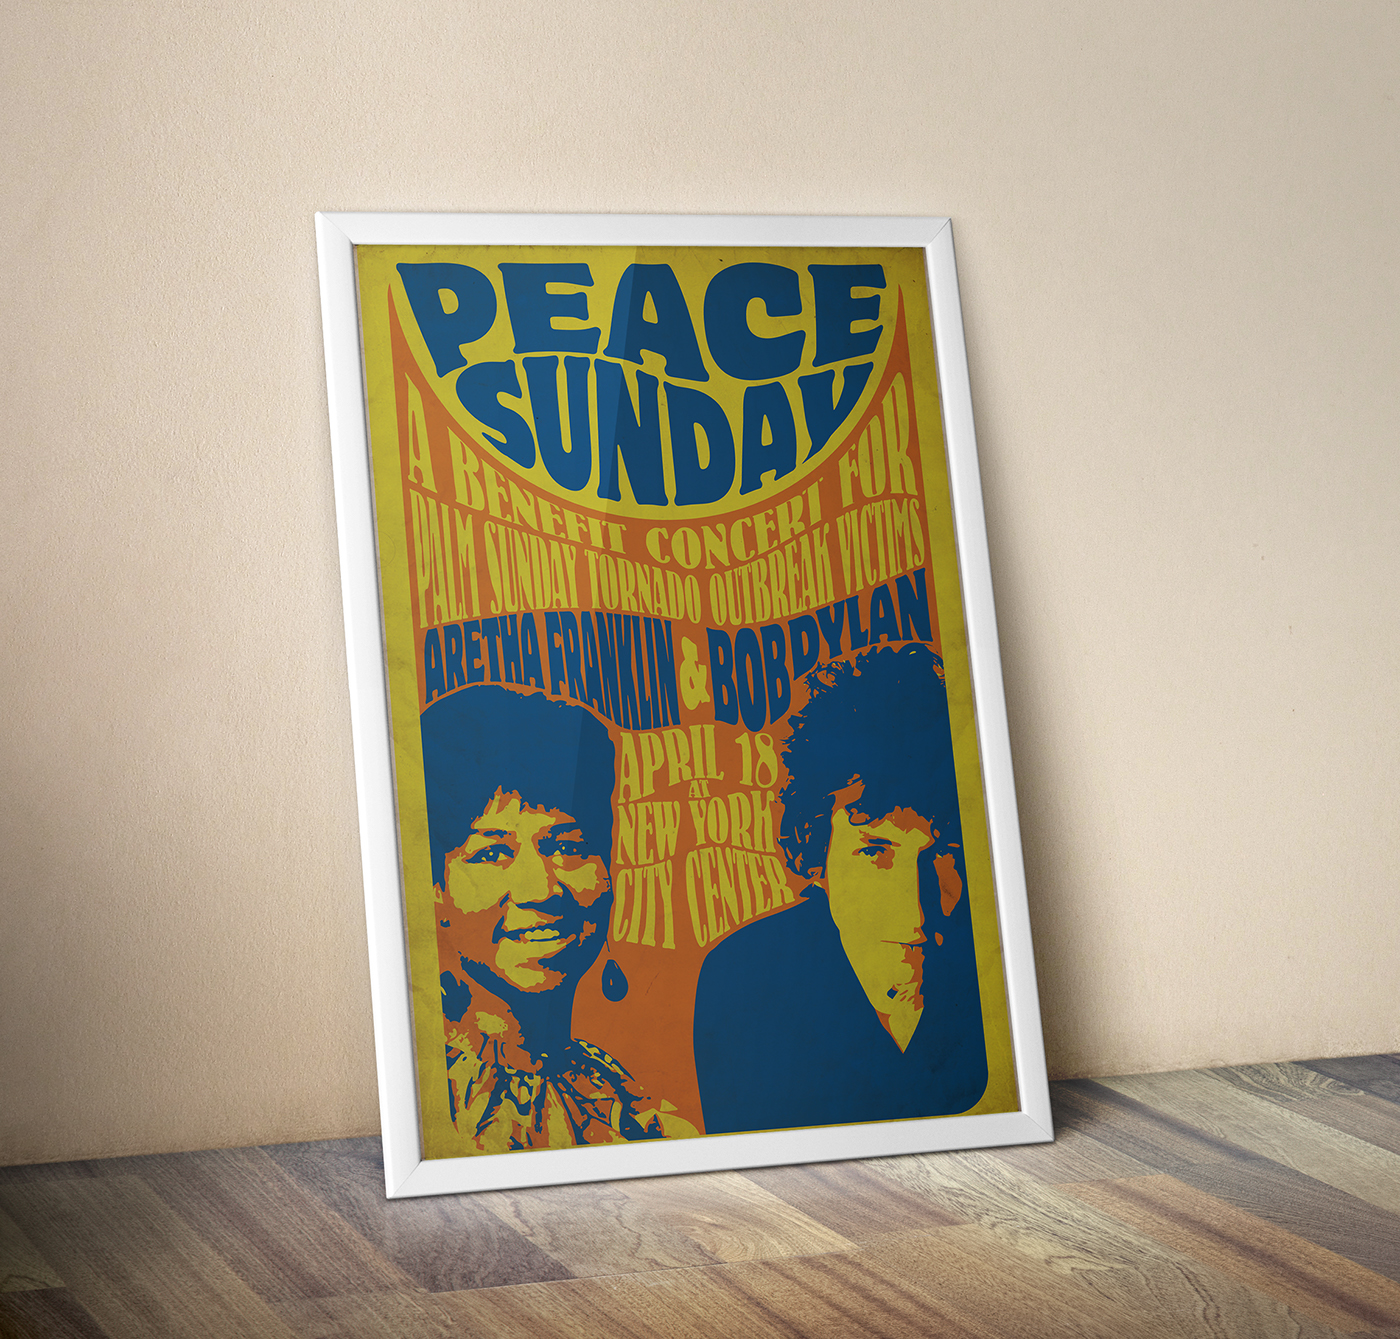 the 1960s concert poster on behance